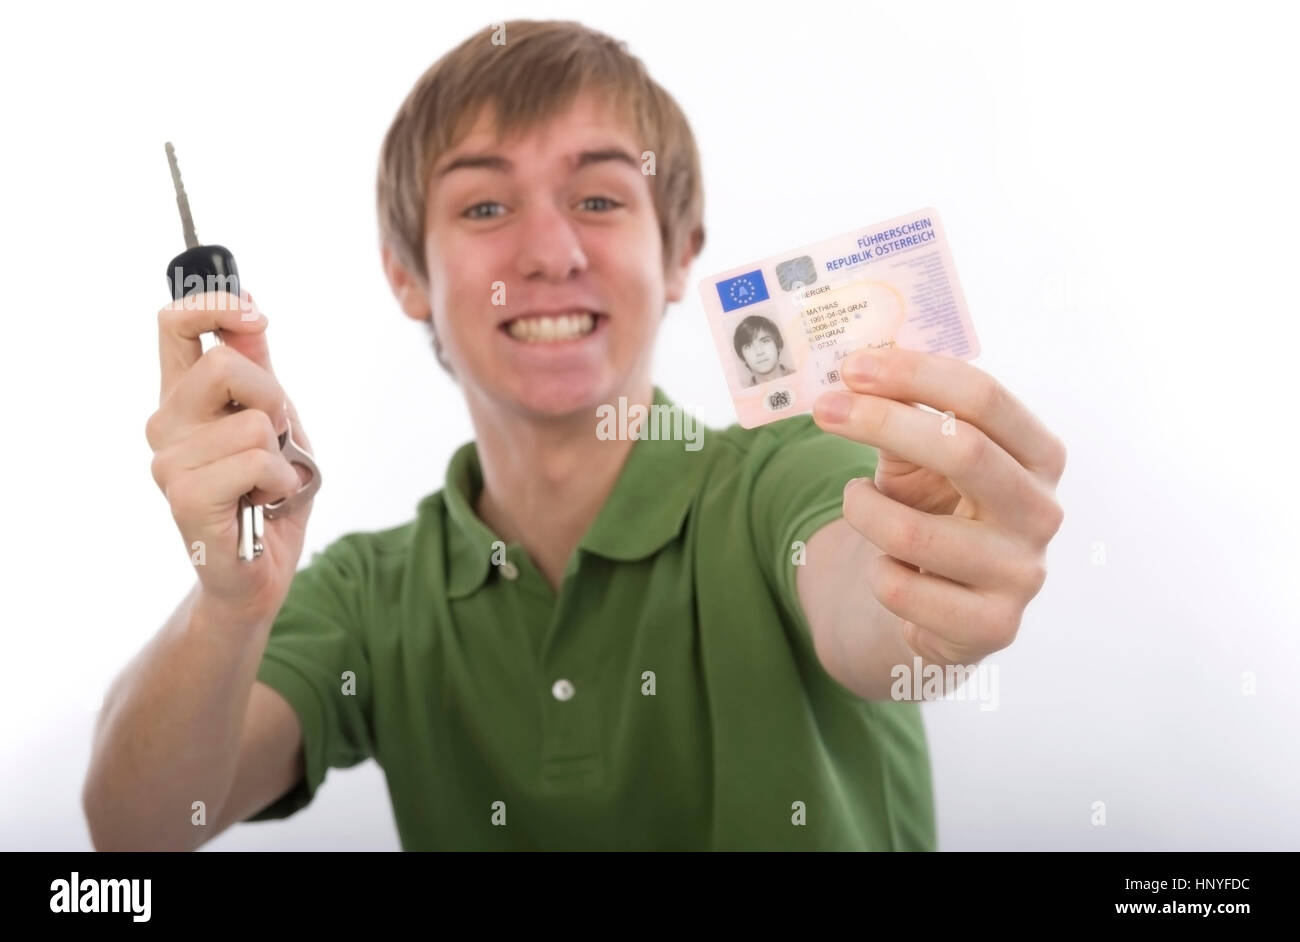 Card Driving Licence Stock Photos & Card Driving Licence